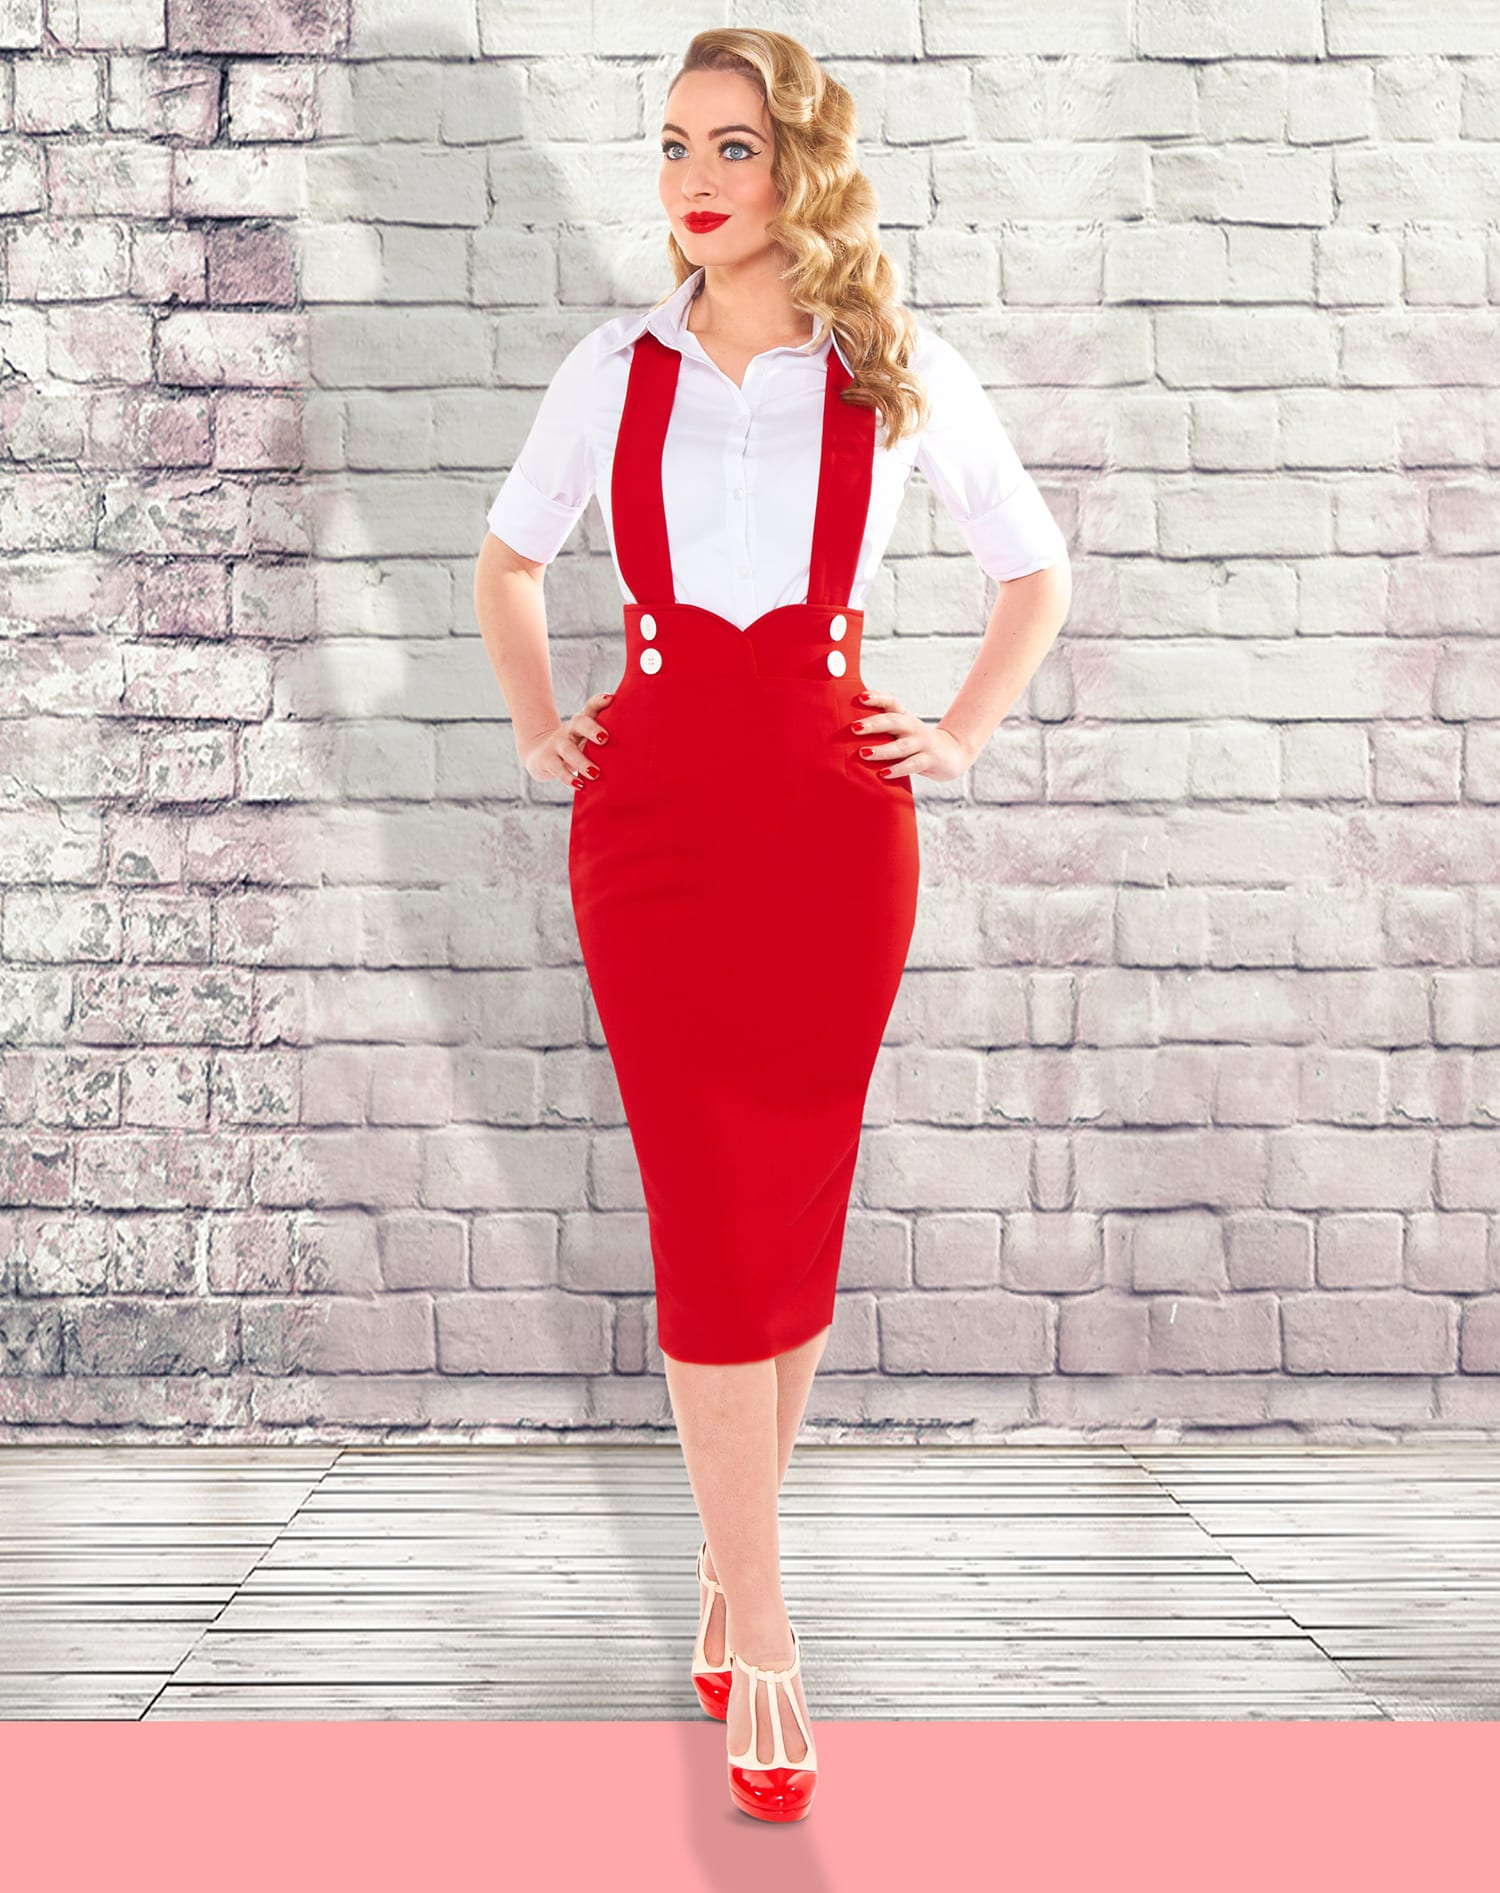 British Retro - 50s style skirts, unique retro clothing, vintage fashion, pencil skirts, swing skirts